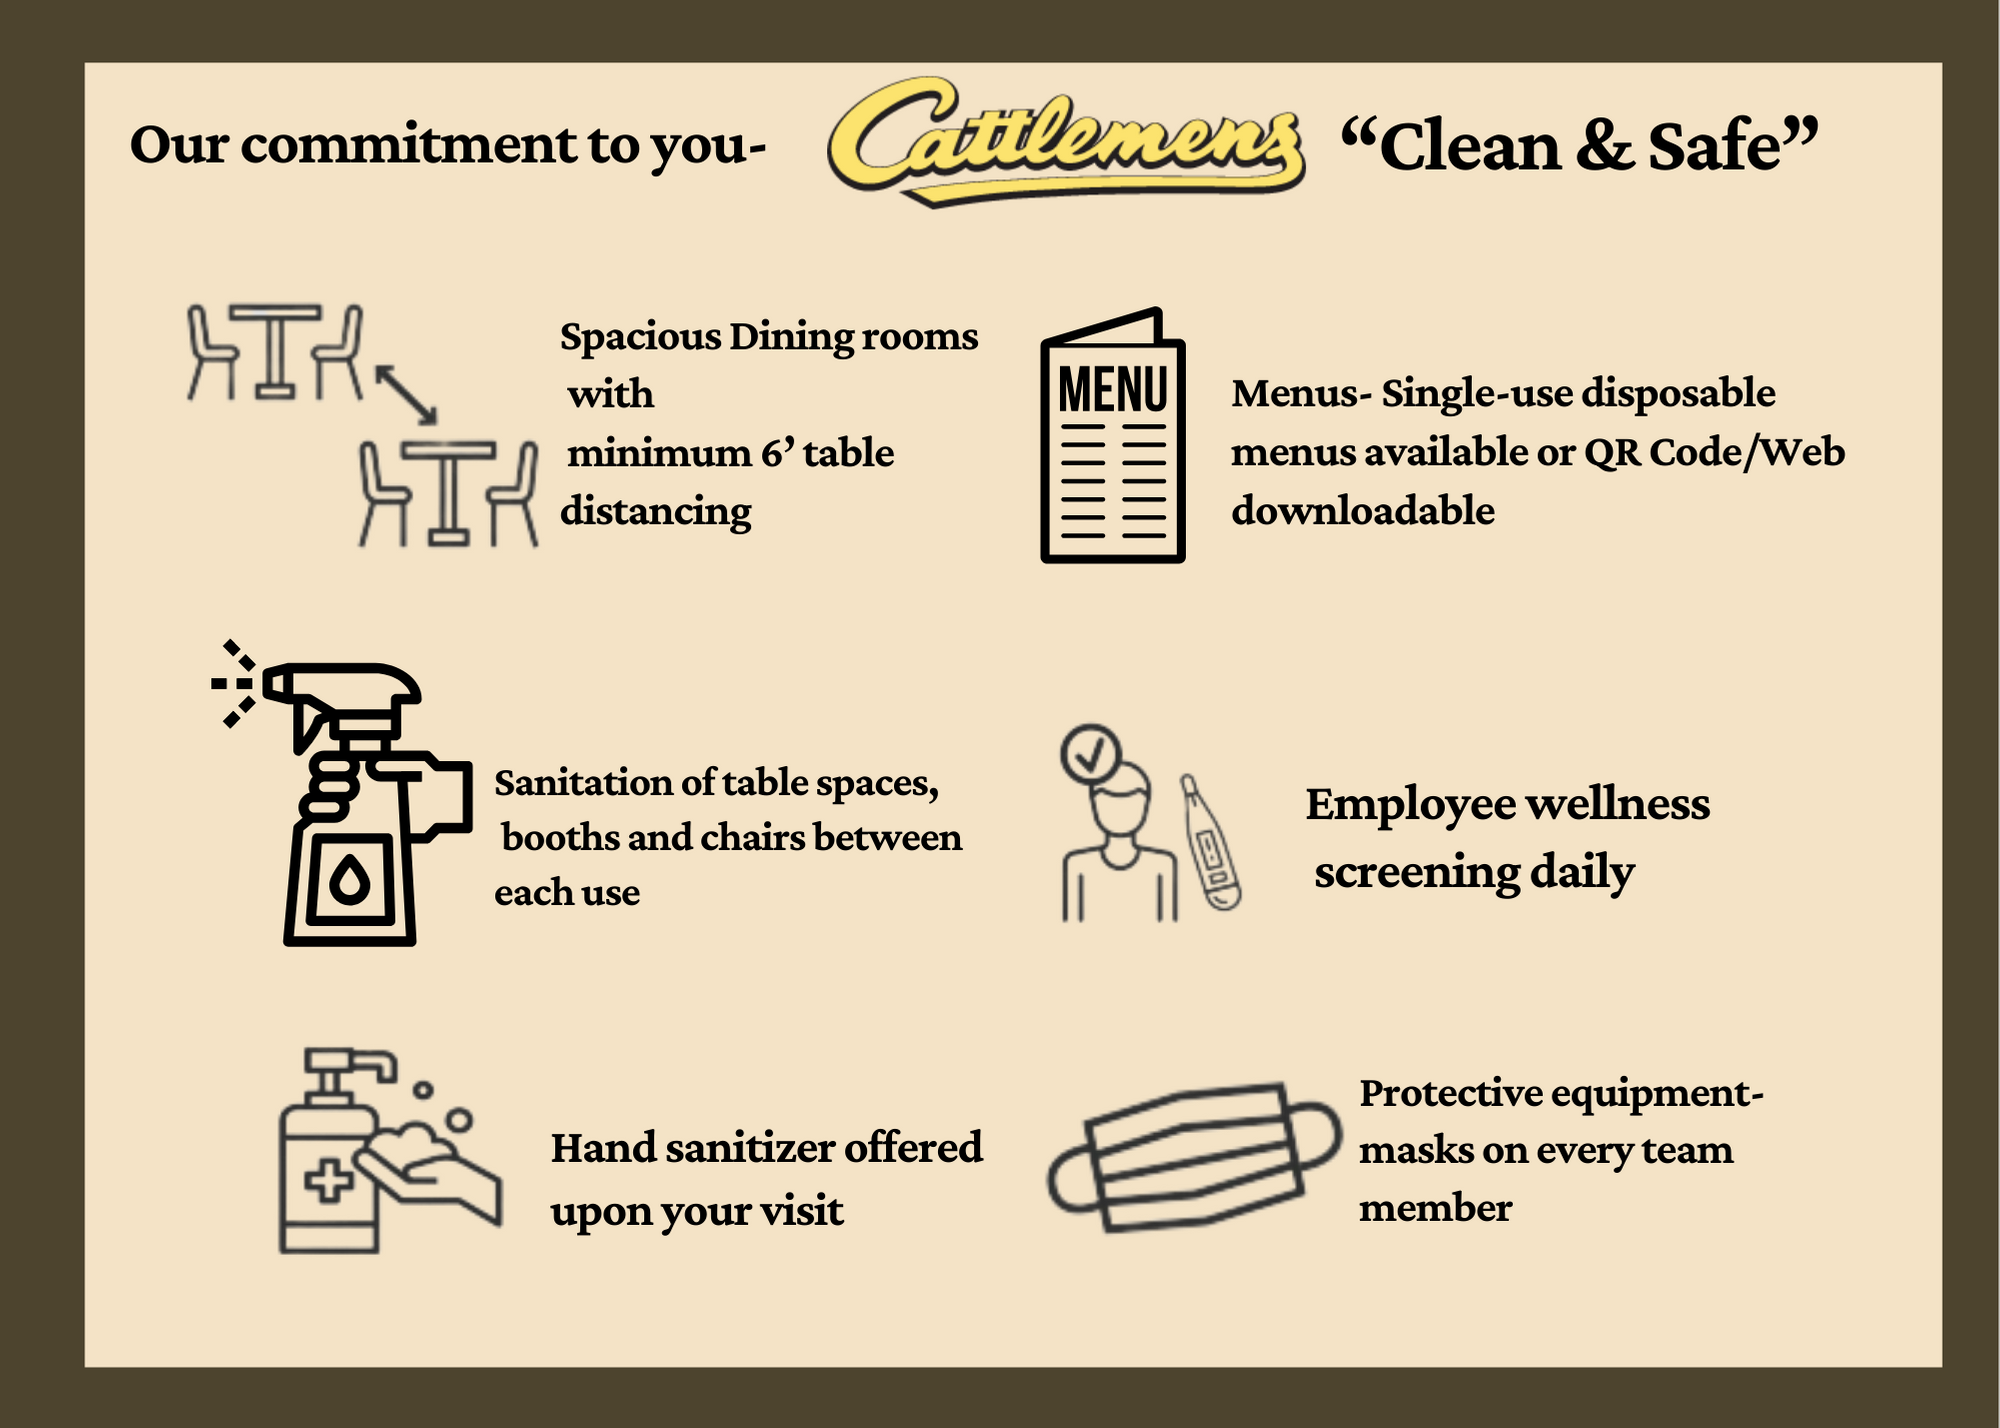 Cattlemens Commitment to Guests Clean and Safe